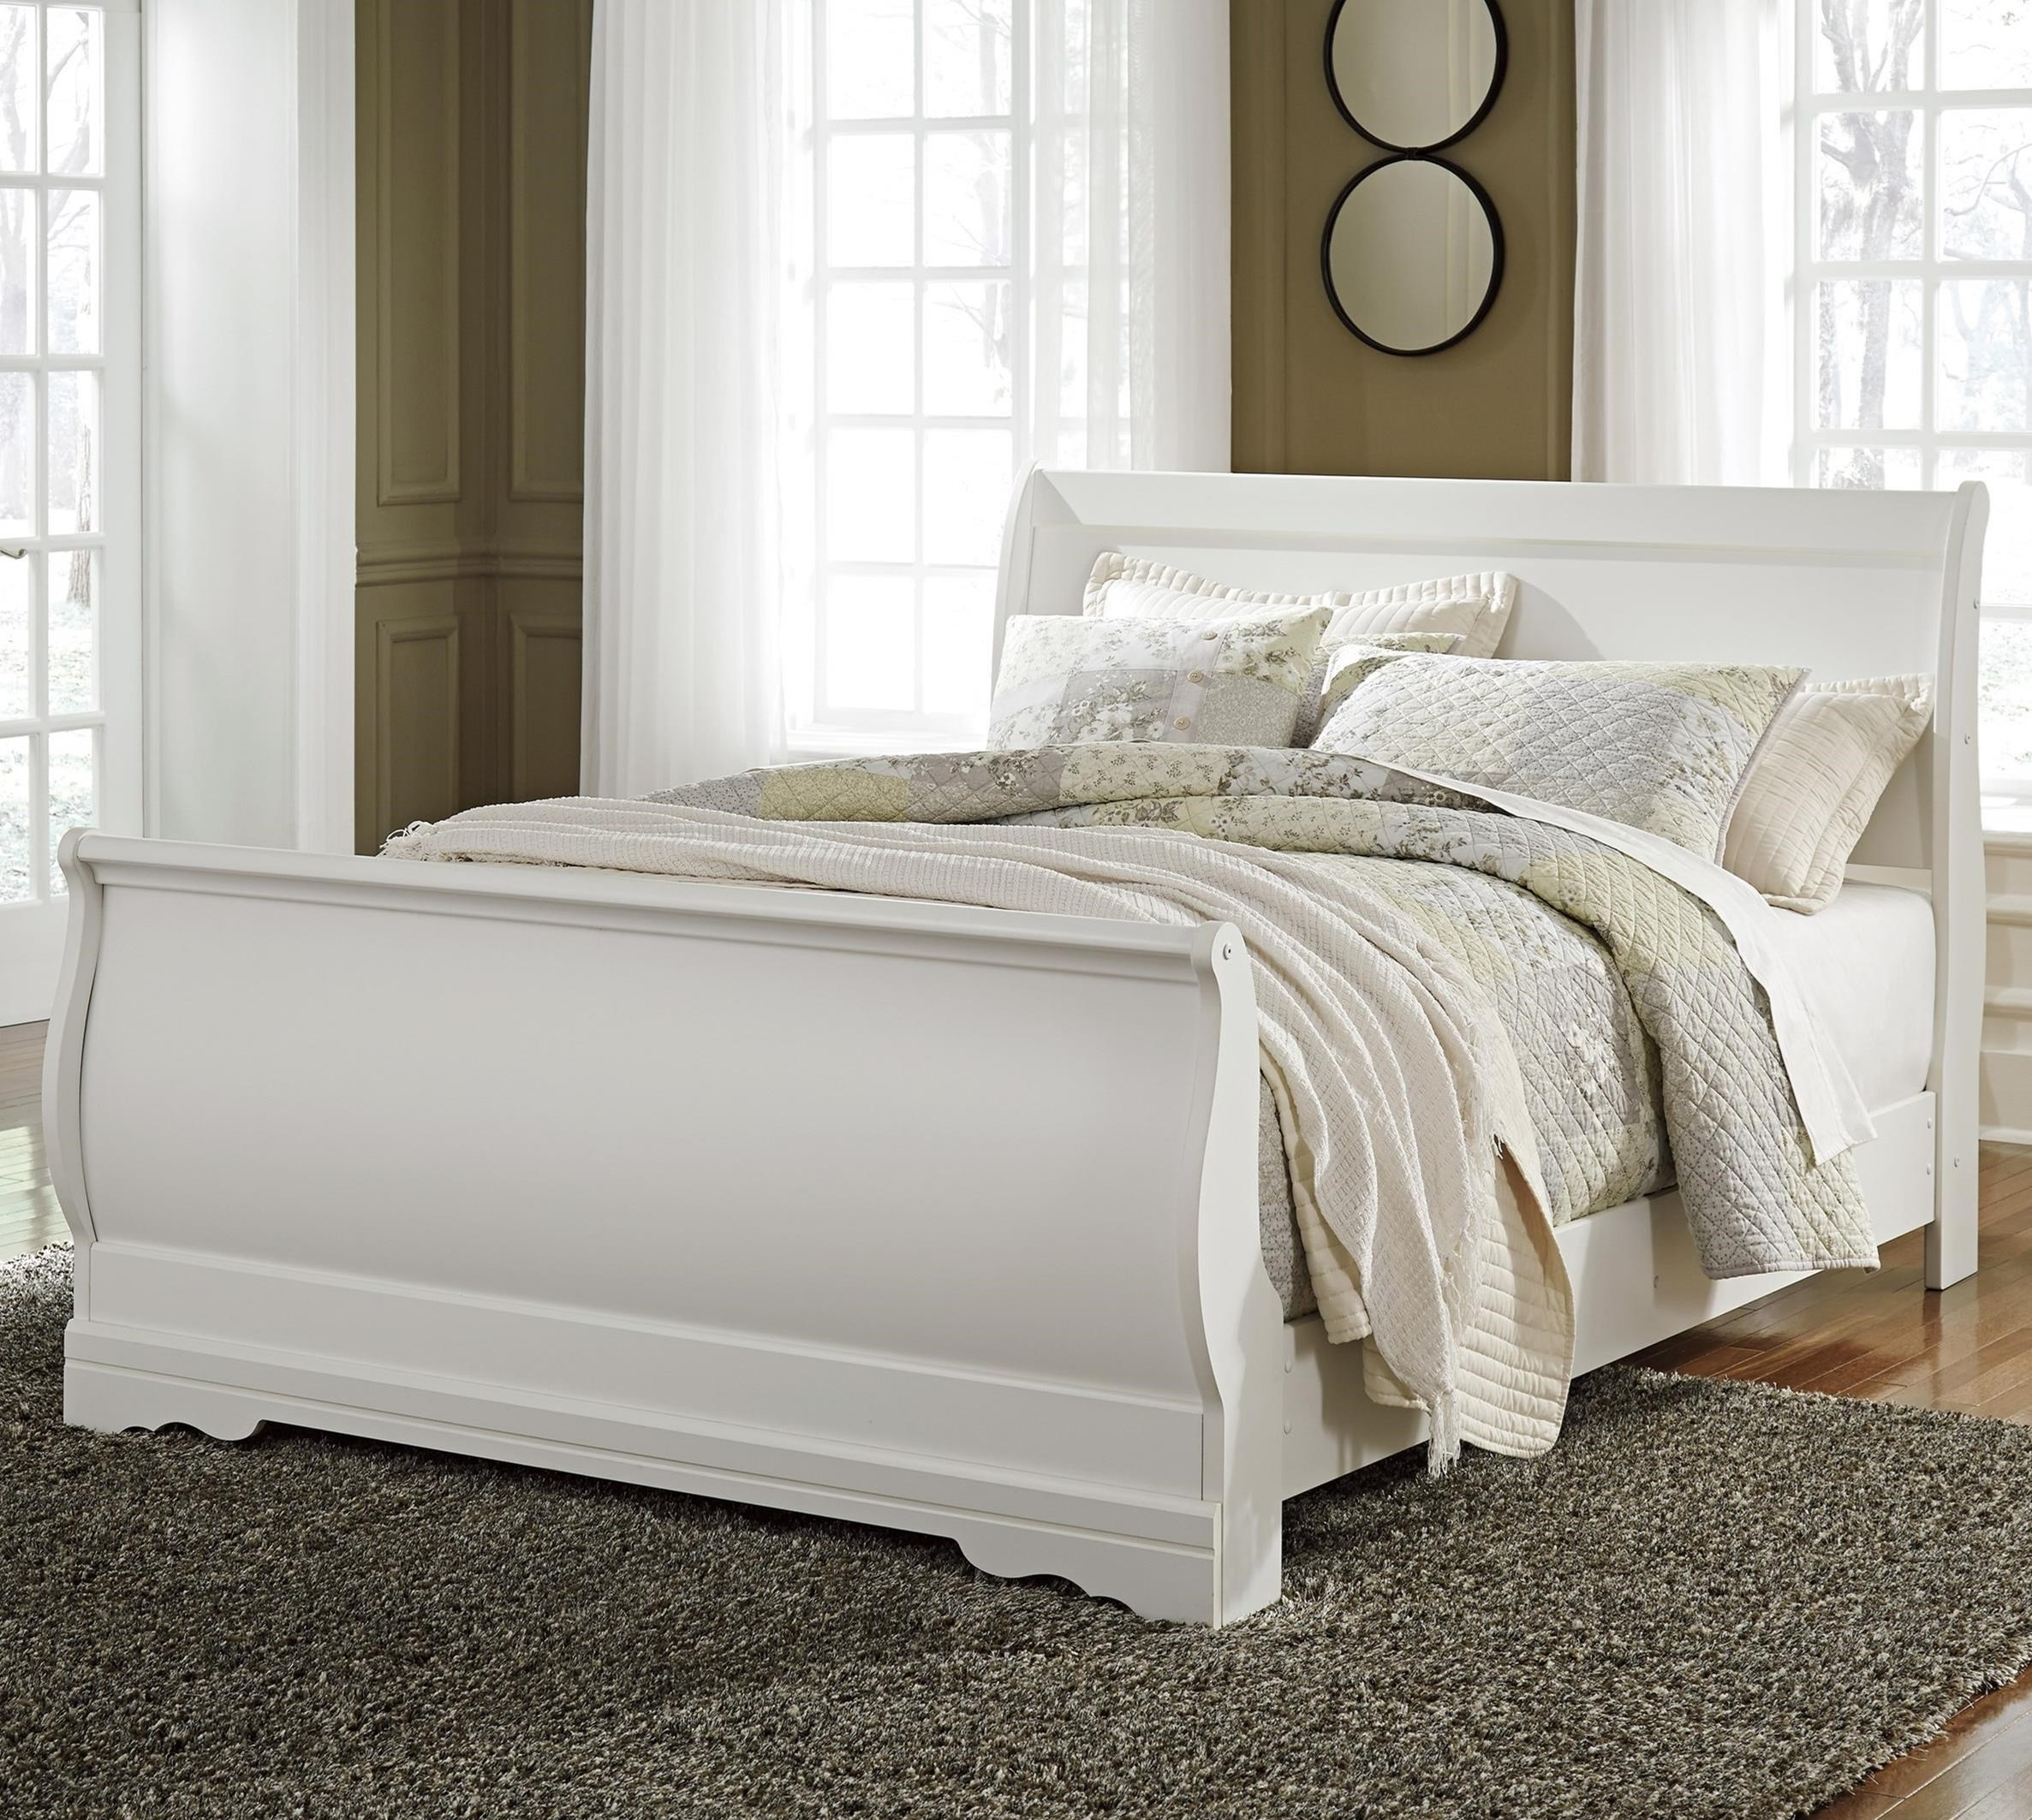 Anarasia Queen Sleigh Bed by Signature Design by Ashley at Furniture Fair - North Carolina